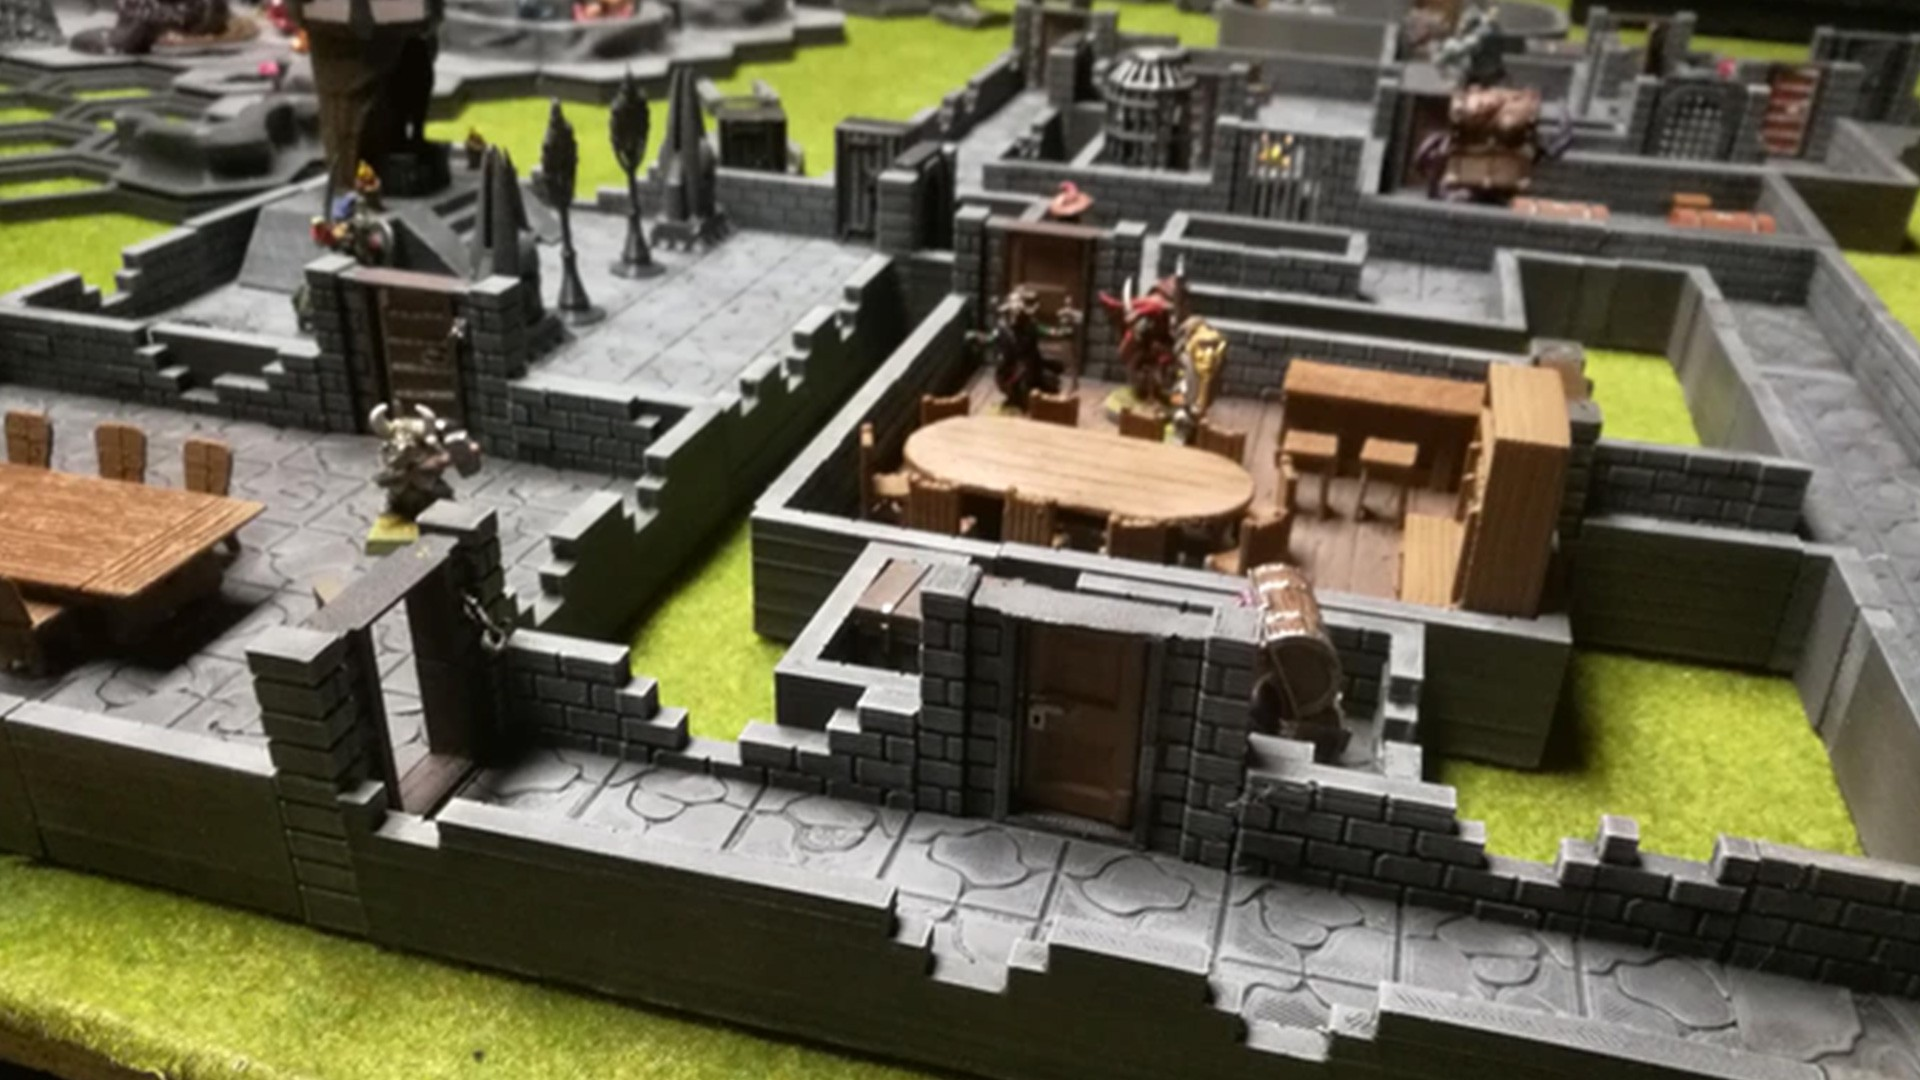 3D DungeonRooms and HexCave STL files